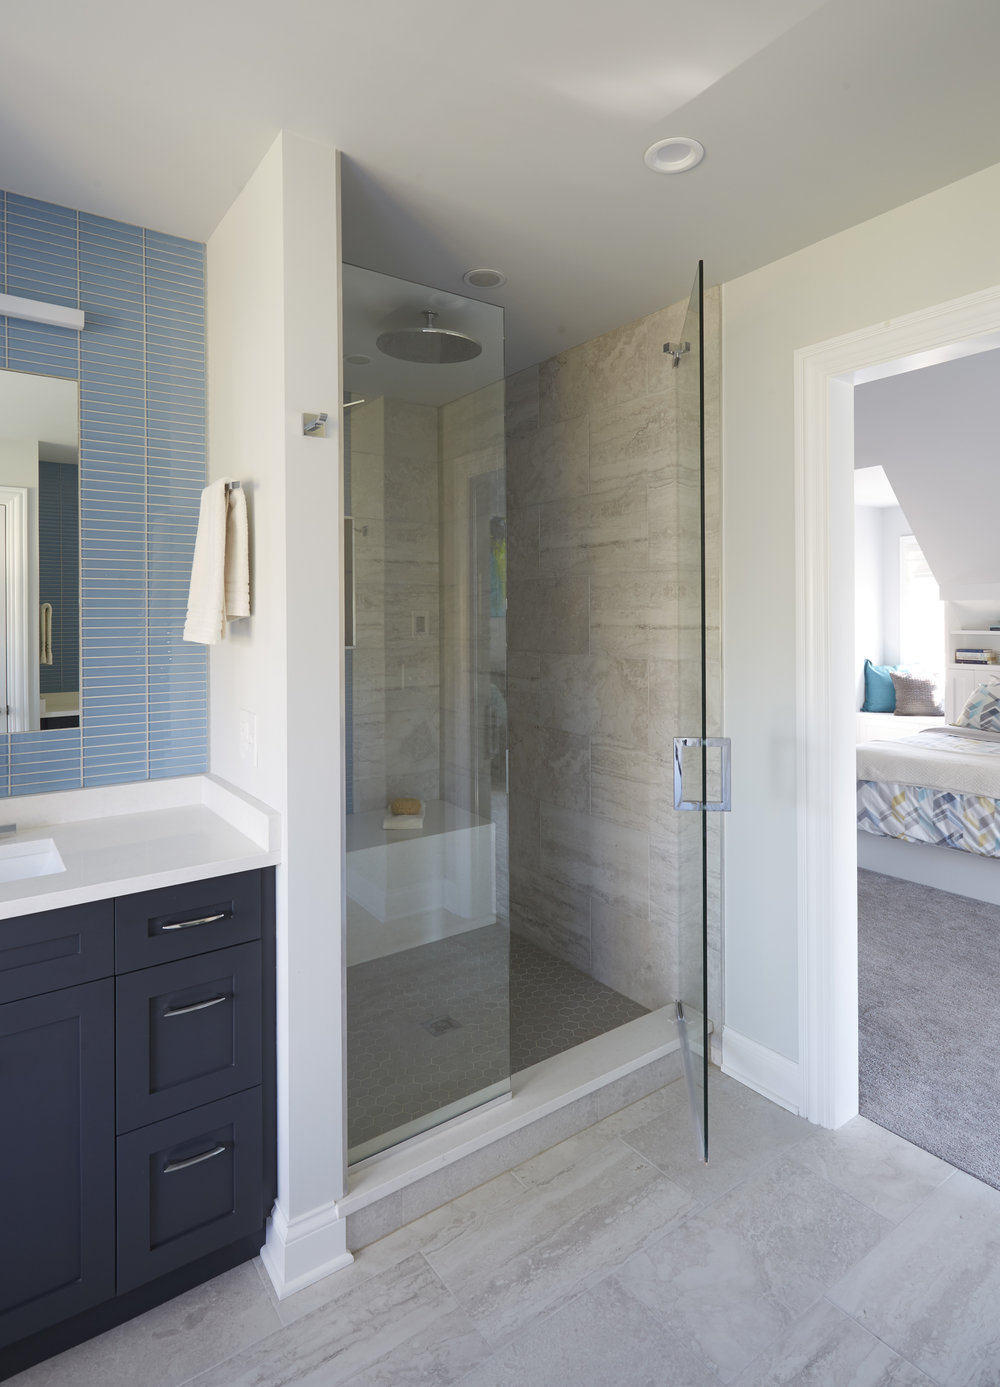 I m semi considering adding test driving bath tubs into my contracts  but I  suppose that could get awkward  The sloping ceiling was maximized again as  a. BLOG   Unpatterned